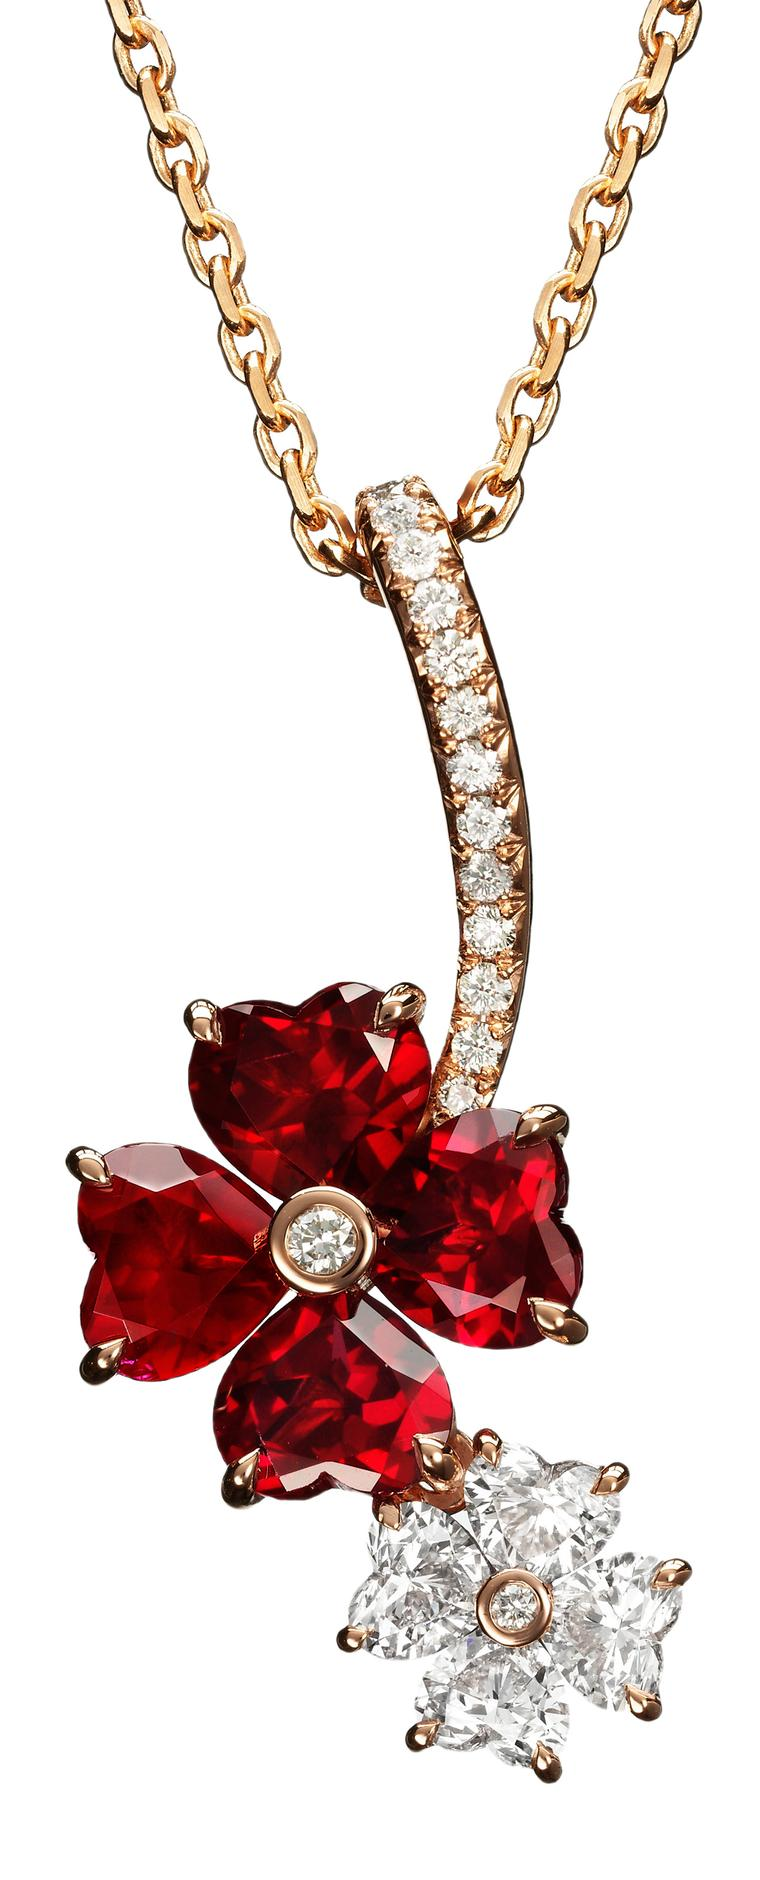 Chopard For You ruby necklace_20130606_Zoom